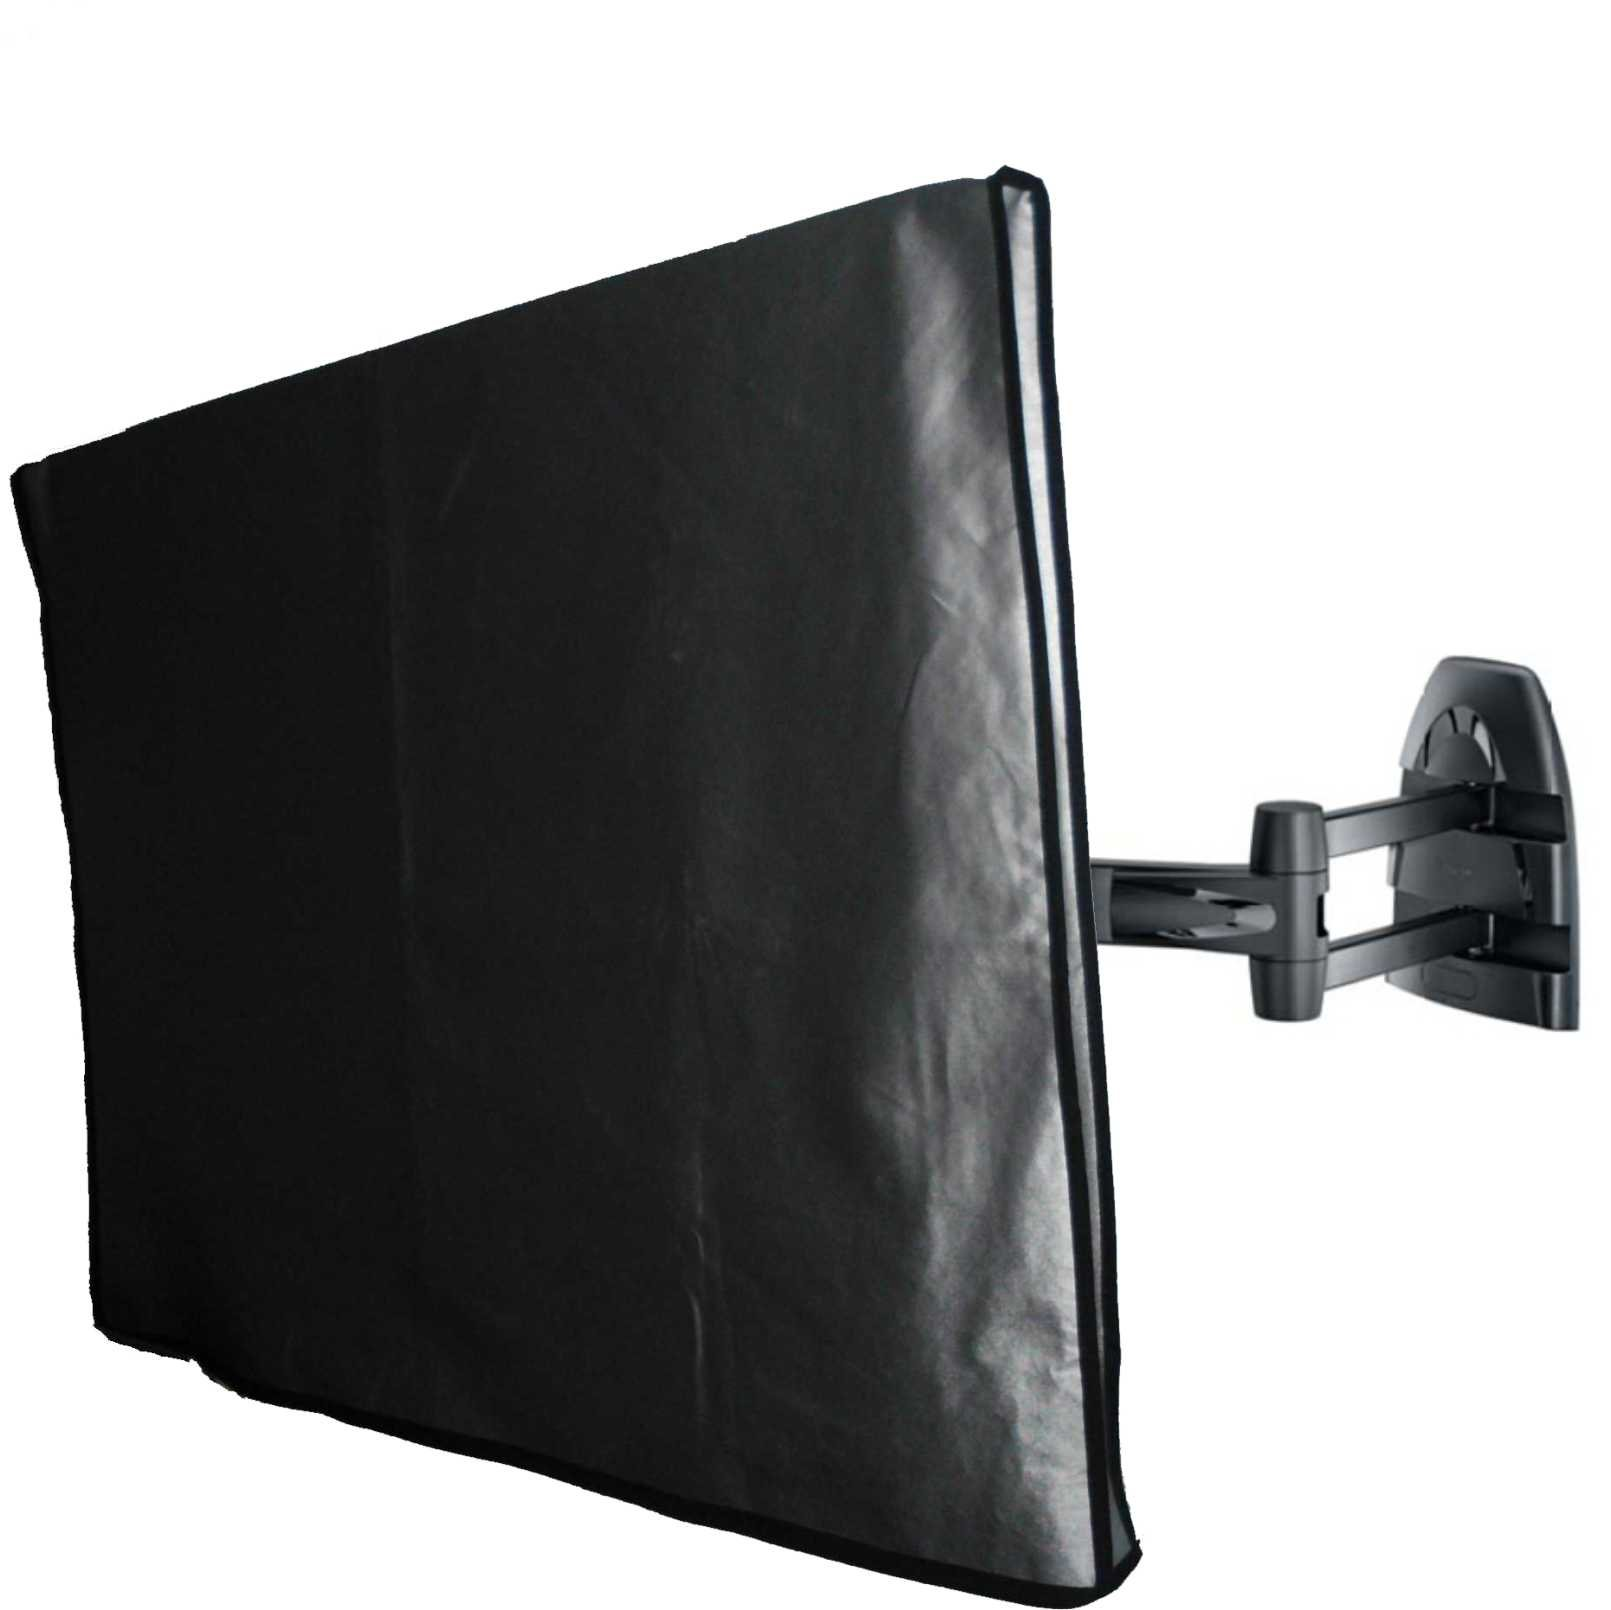 LG 55LKB6000 55'' TV-Custom Fitting Black Marine Grade Outdoor Water Resistant Cover